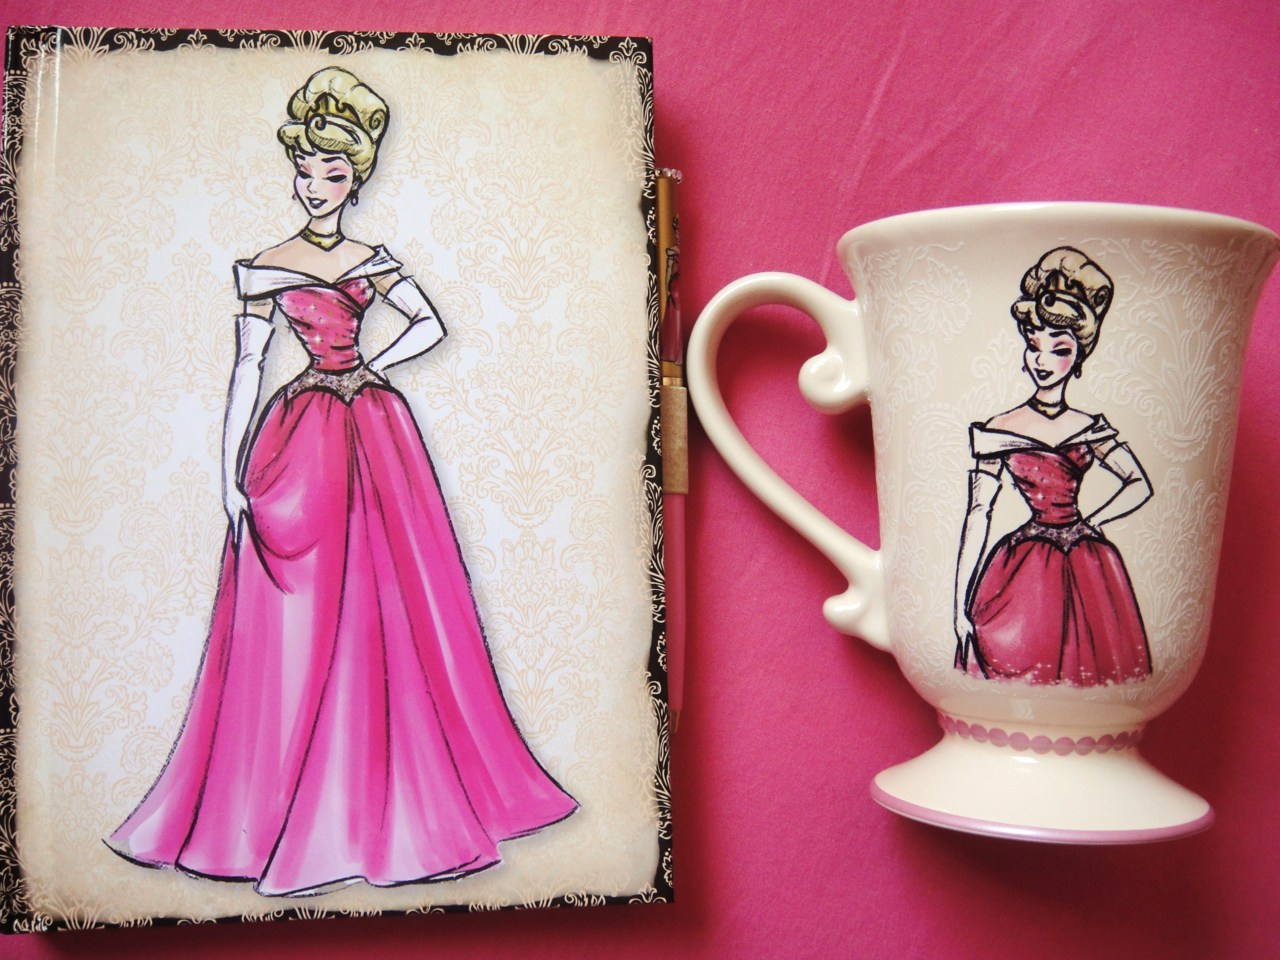 I got this yesterday from the Disney Princess Designer Collection. I love it :) I can't wait to get the doll.